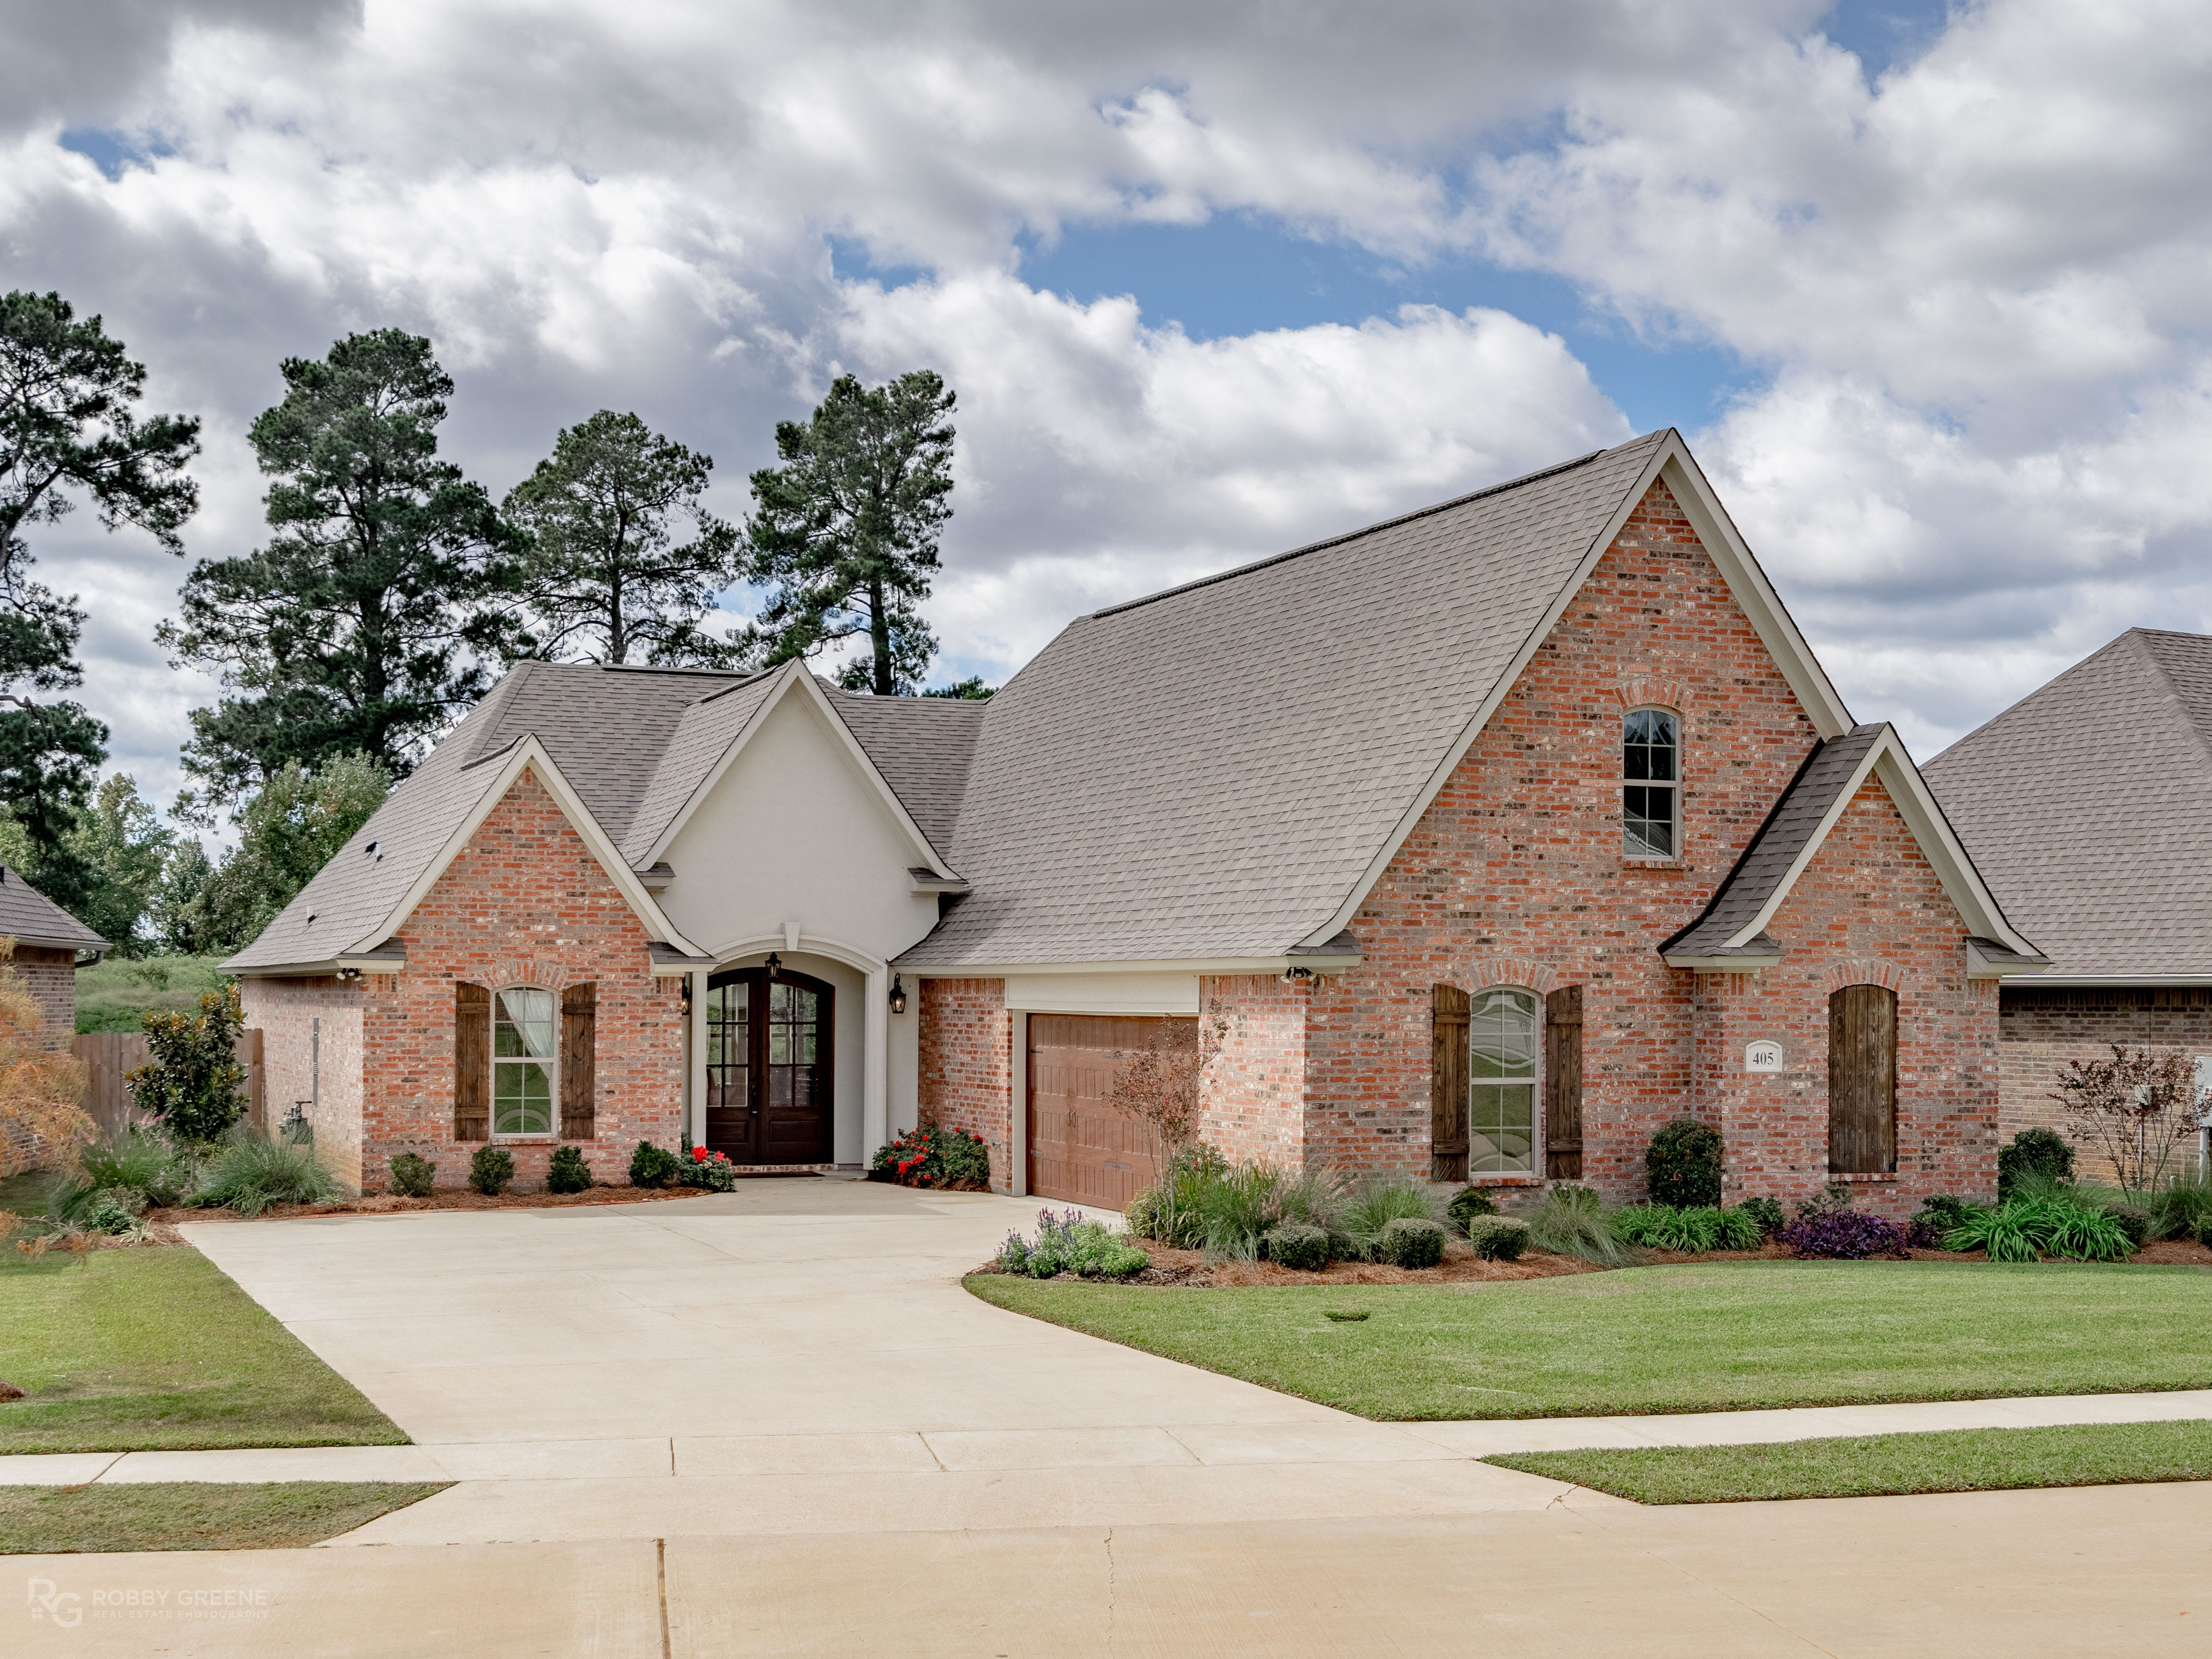 2913 Long Lake Drive, Shreveport  Price: $634,900  Details: 4 bedrooms, 4 bathrooms, 4,095 square feet  Featuring: Custom built and updated home with 95 feet of lake frontage on an acre lot.   Contact: Sue White,   426-8050